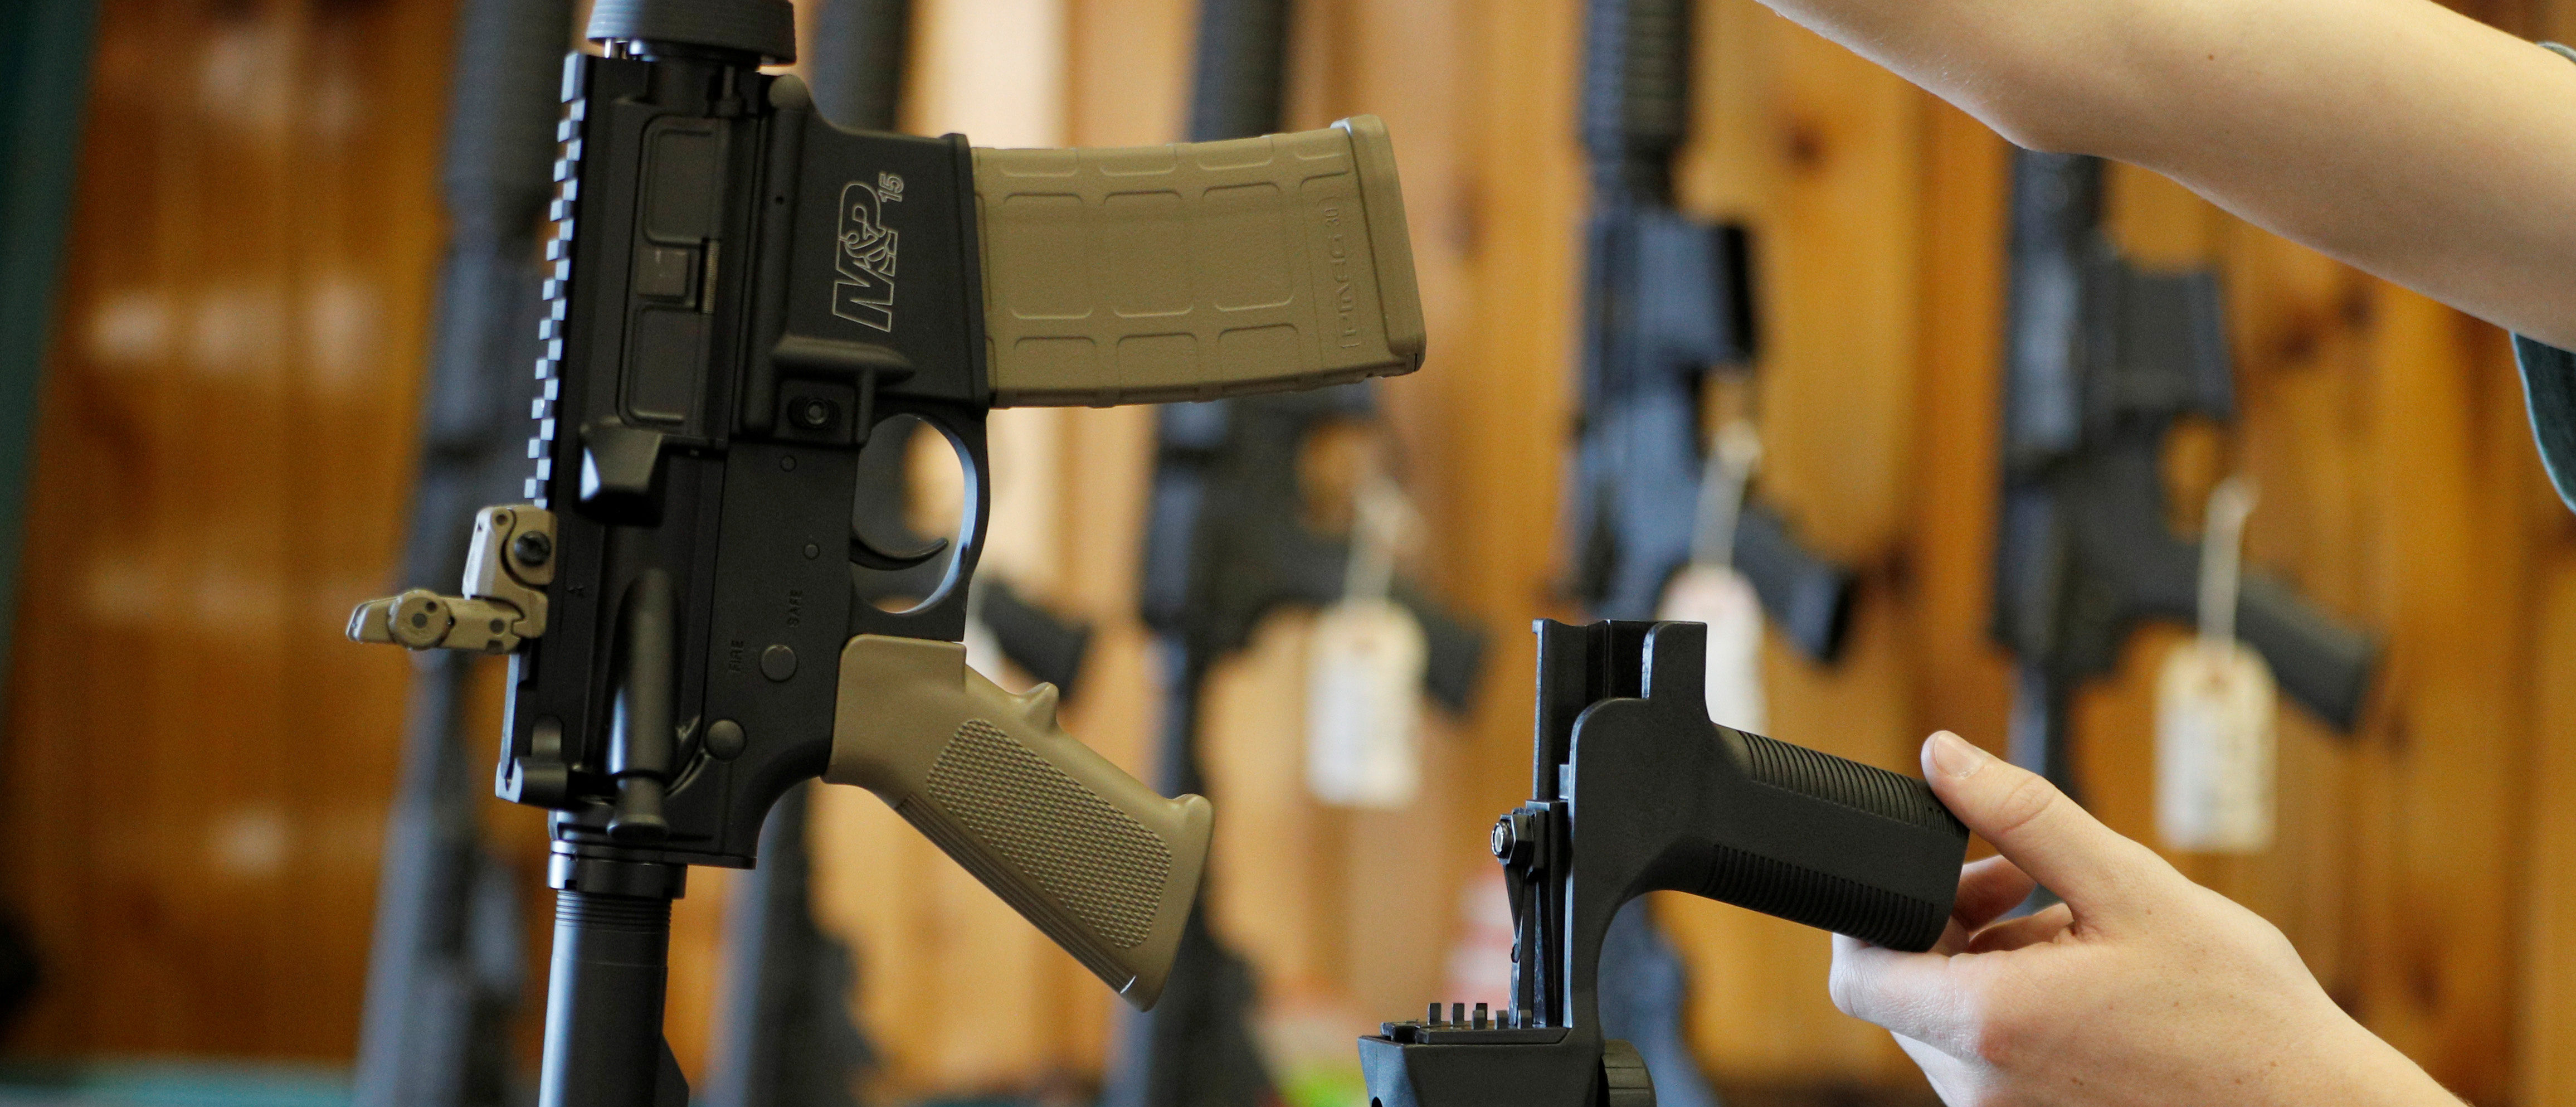 A bump fire stock, (R), that attaches to a semi-automatic rifle to increase the firing rate is seen at Good Guys Gun Shop in Orem, Utah, U.S., October 4, 2017. REUTERS/George Frey